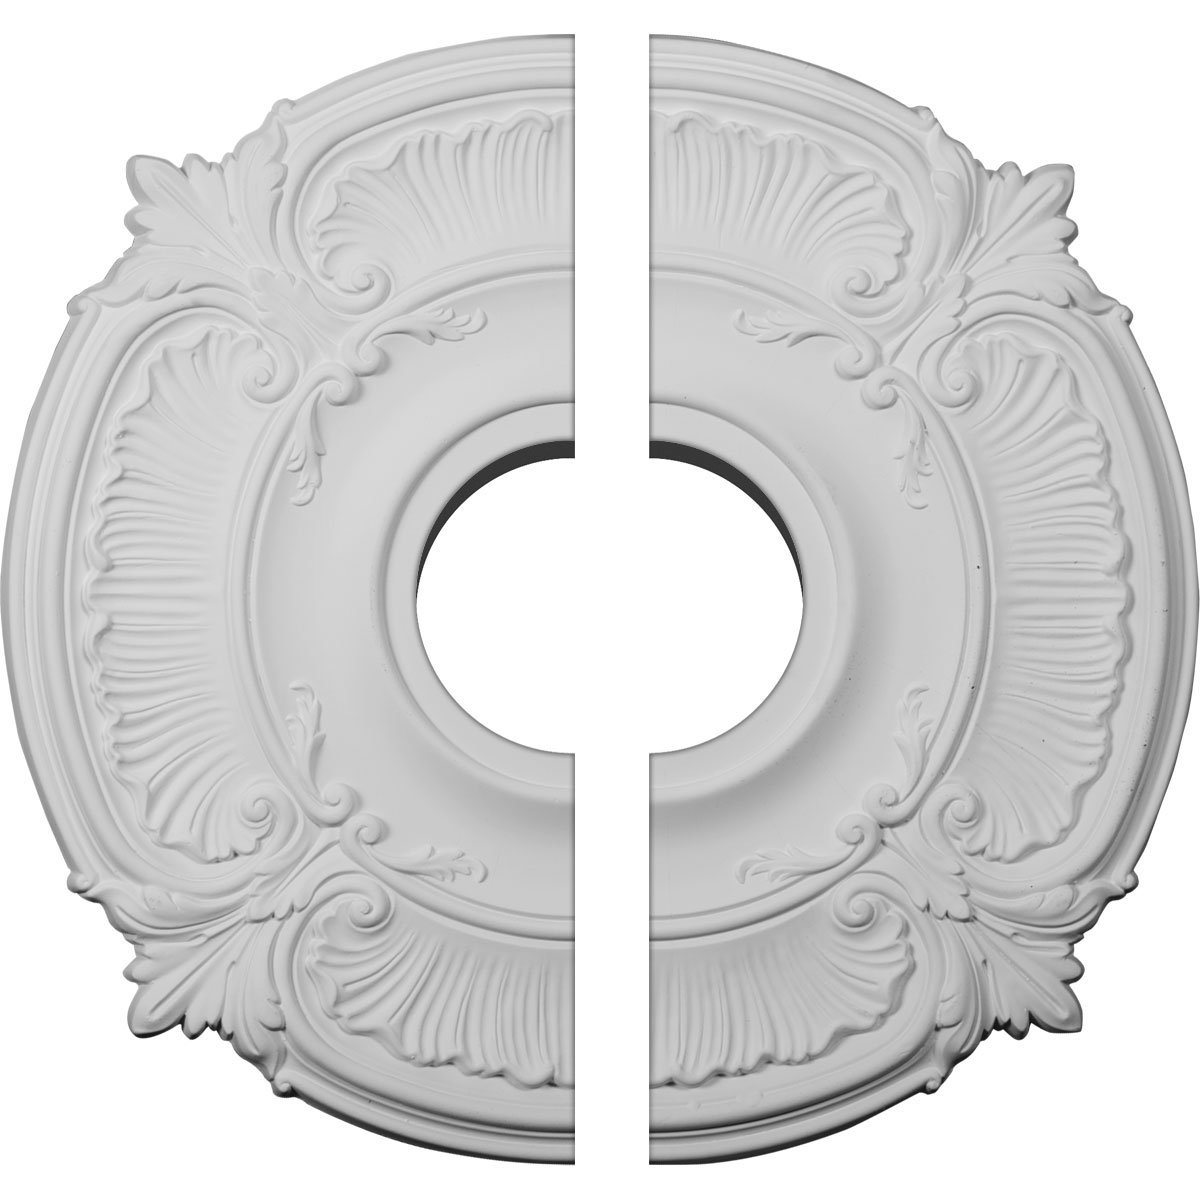 Ekena Millwork CM18AT2 18''OD x 4''ID x 5/8''P Attica Ceiling Medallion, Fits Canopies up to 5'', 2 Piece